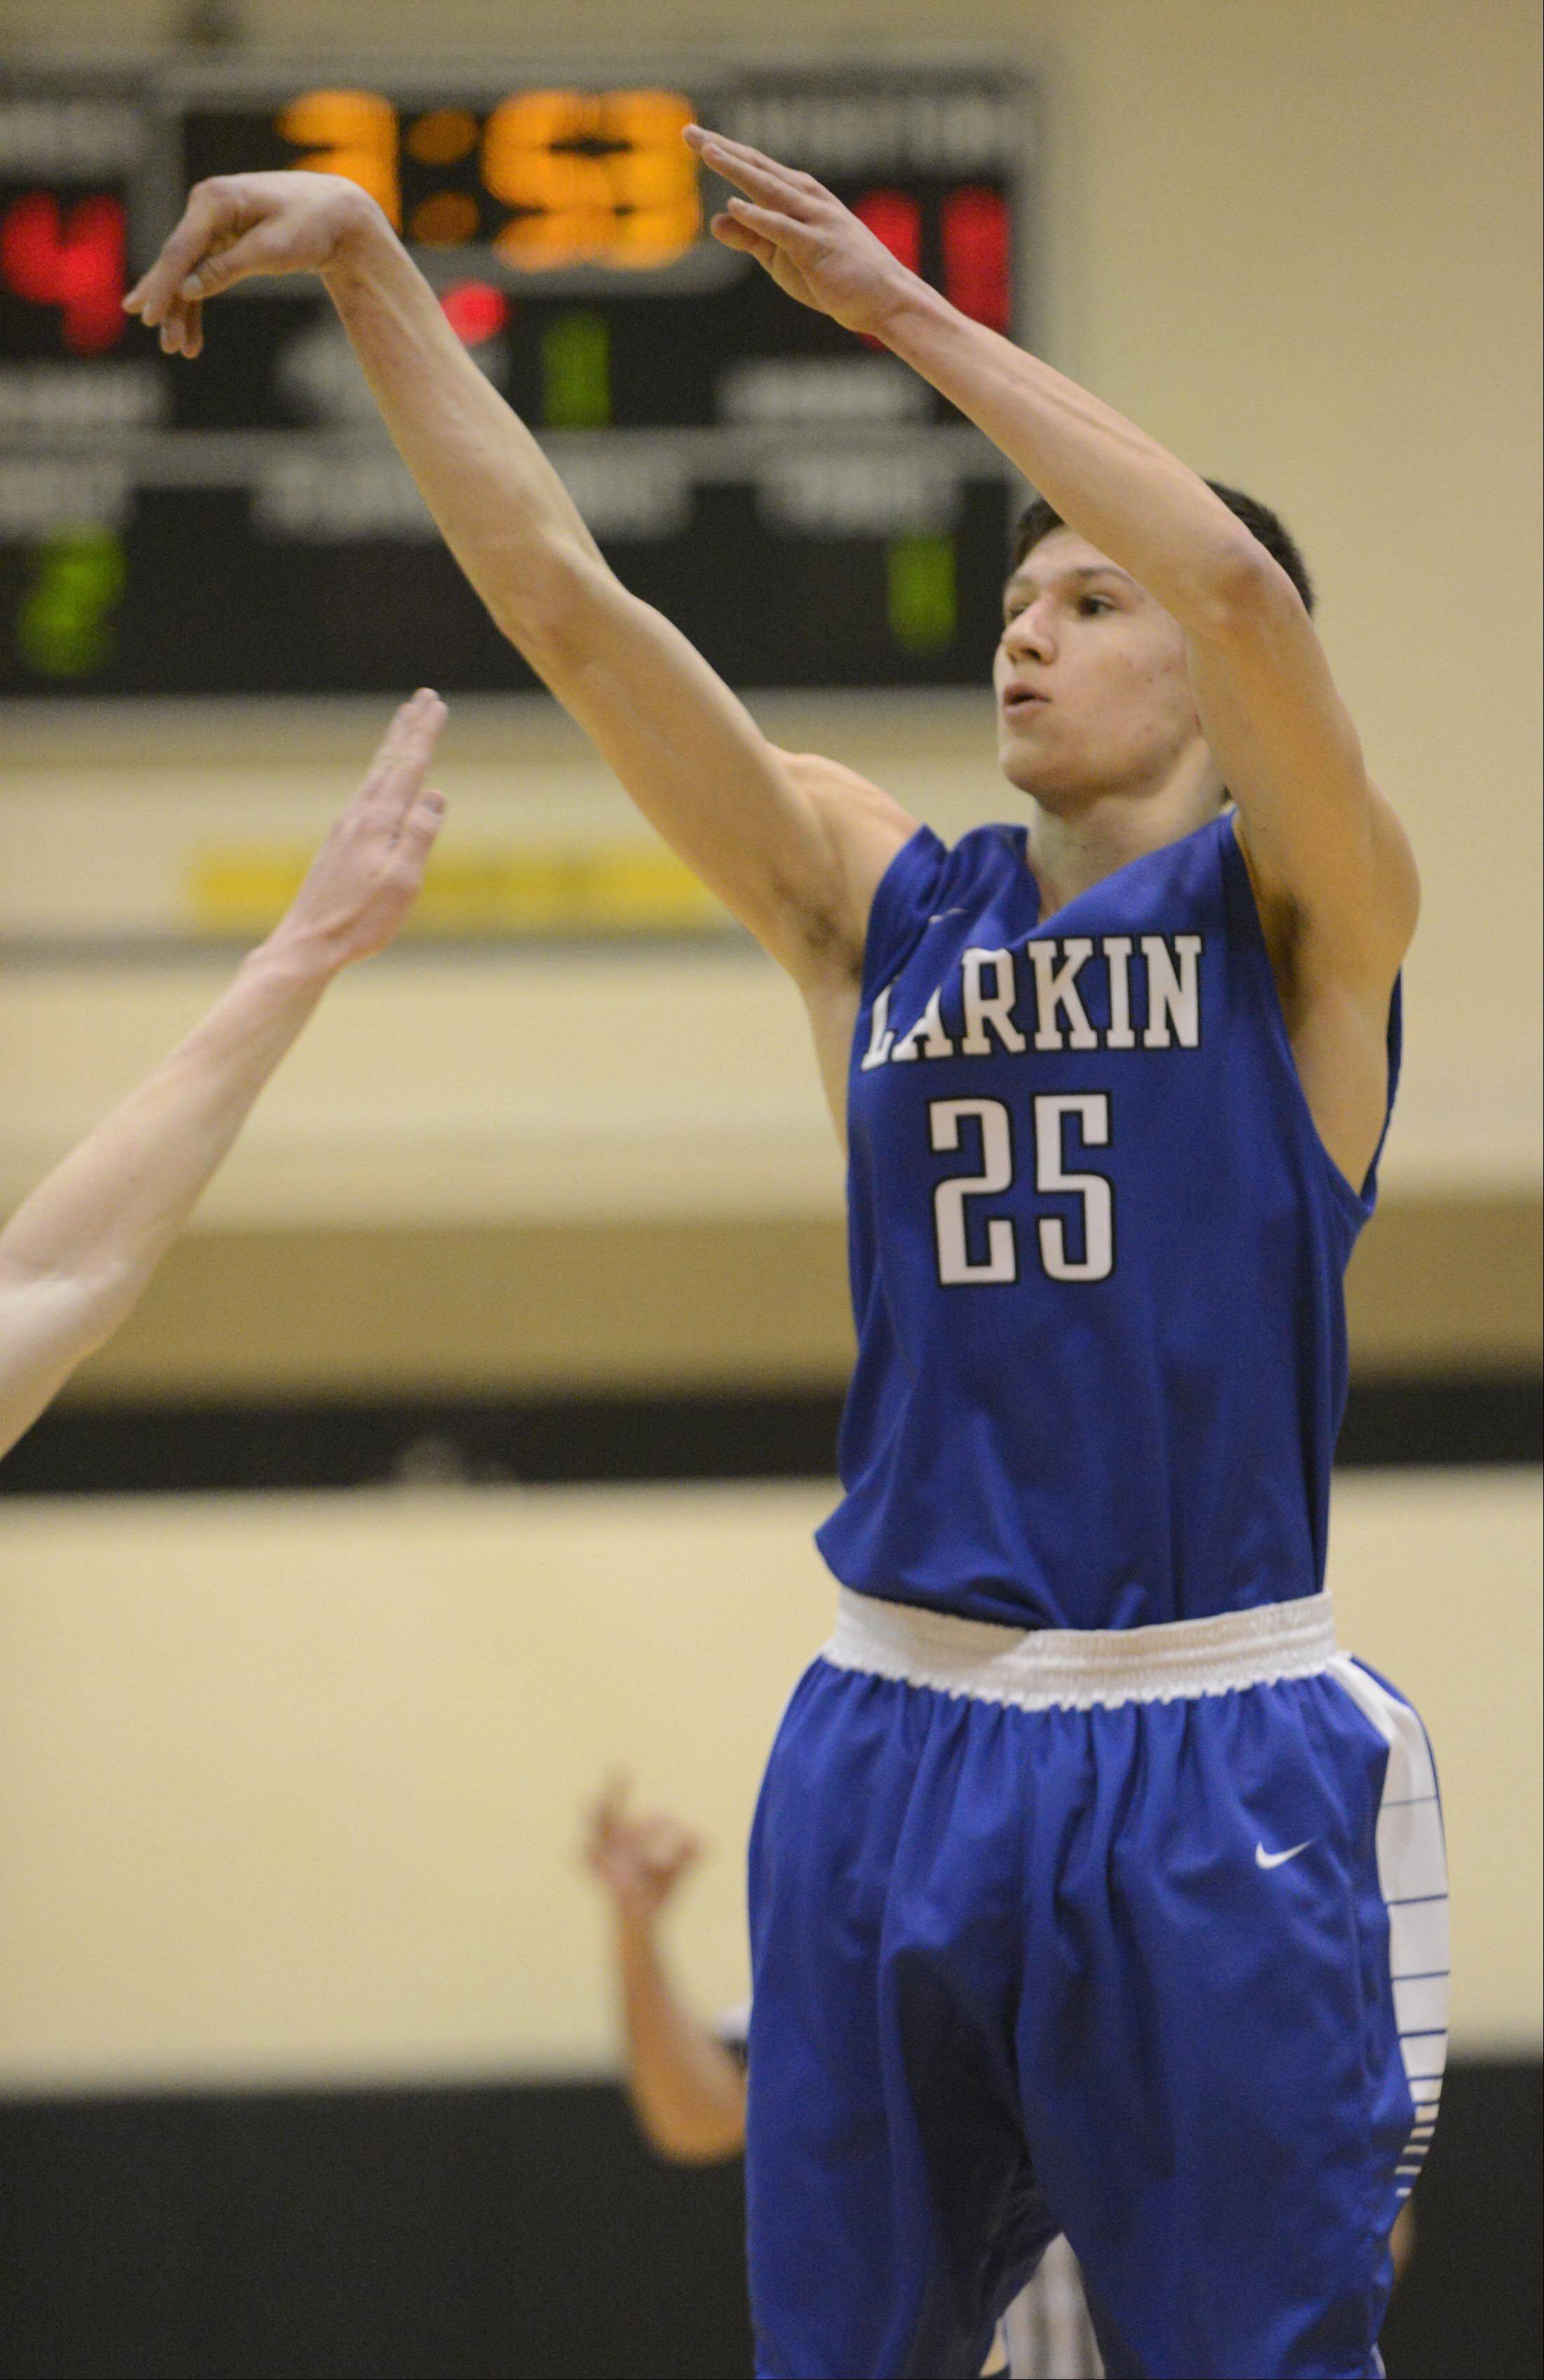 Larkin's Taylor Boley works the offense against Streamwood earlier this season. The Royals host Elgin tonight.